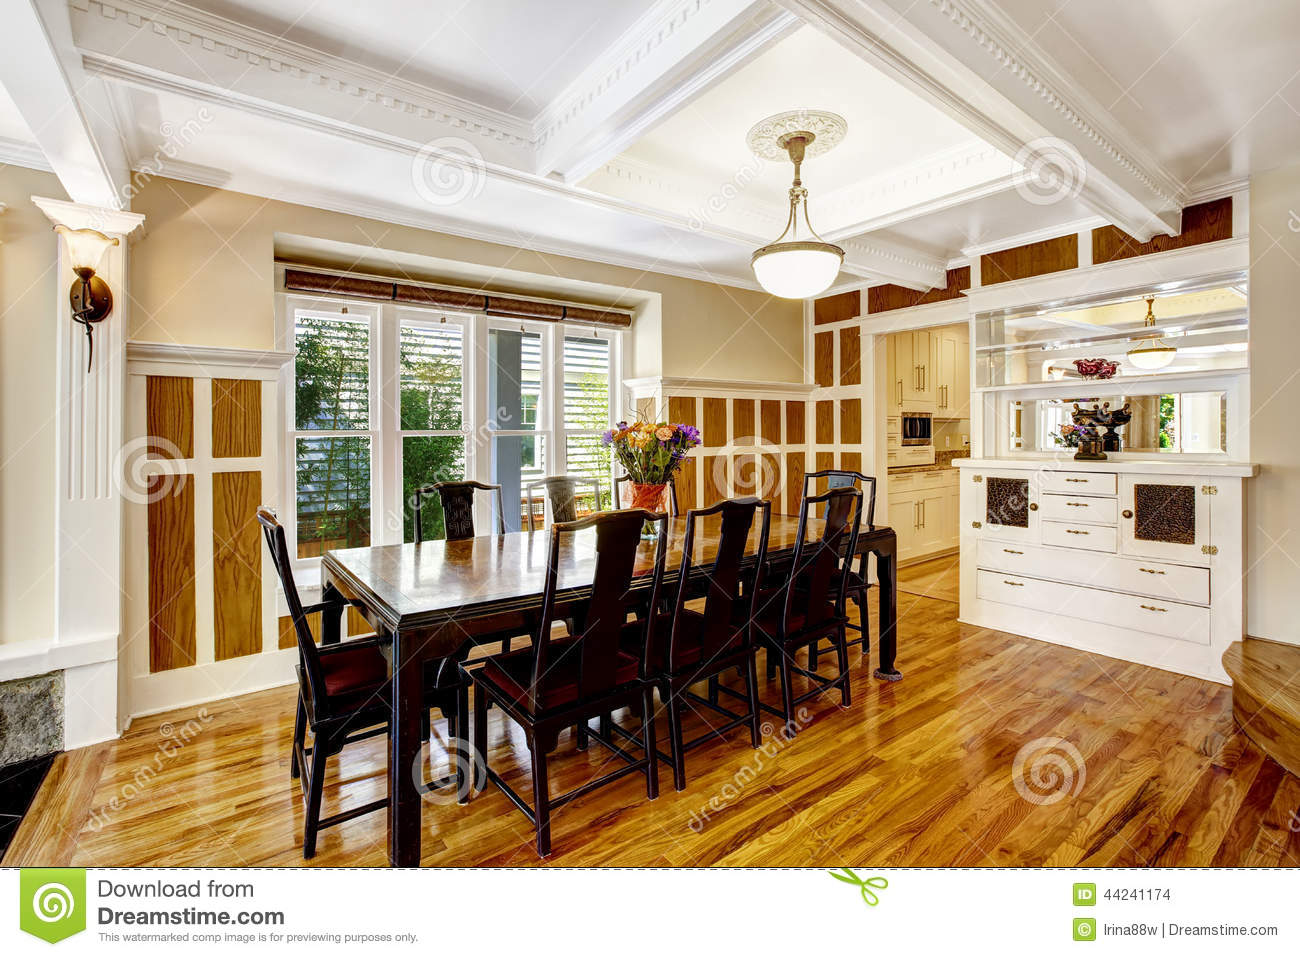 Empressive dining room interior luxury house with wood for Salle a manger de luxe